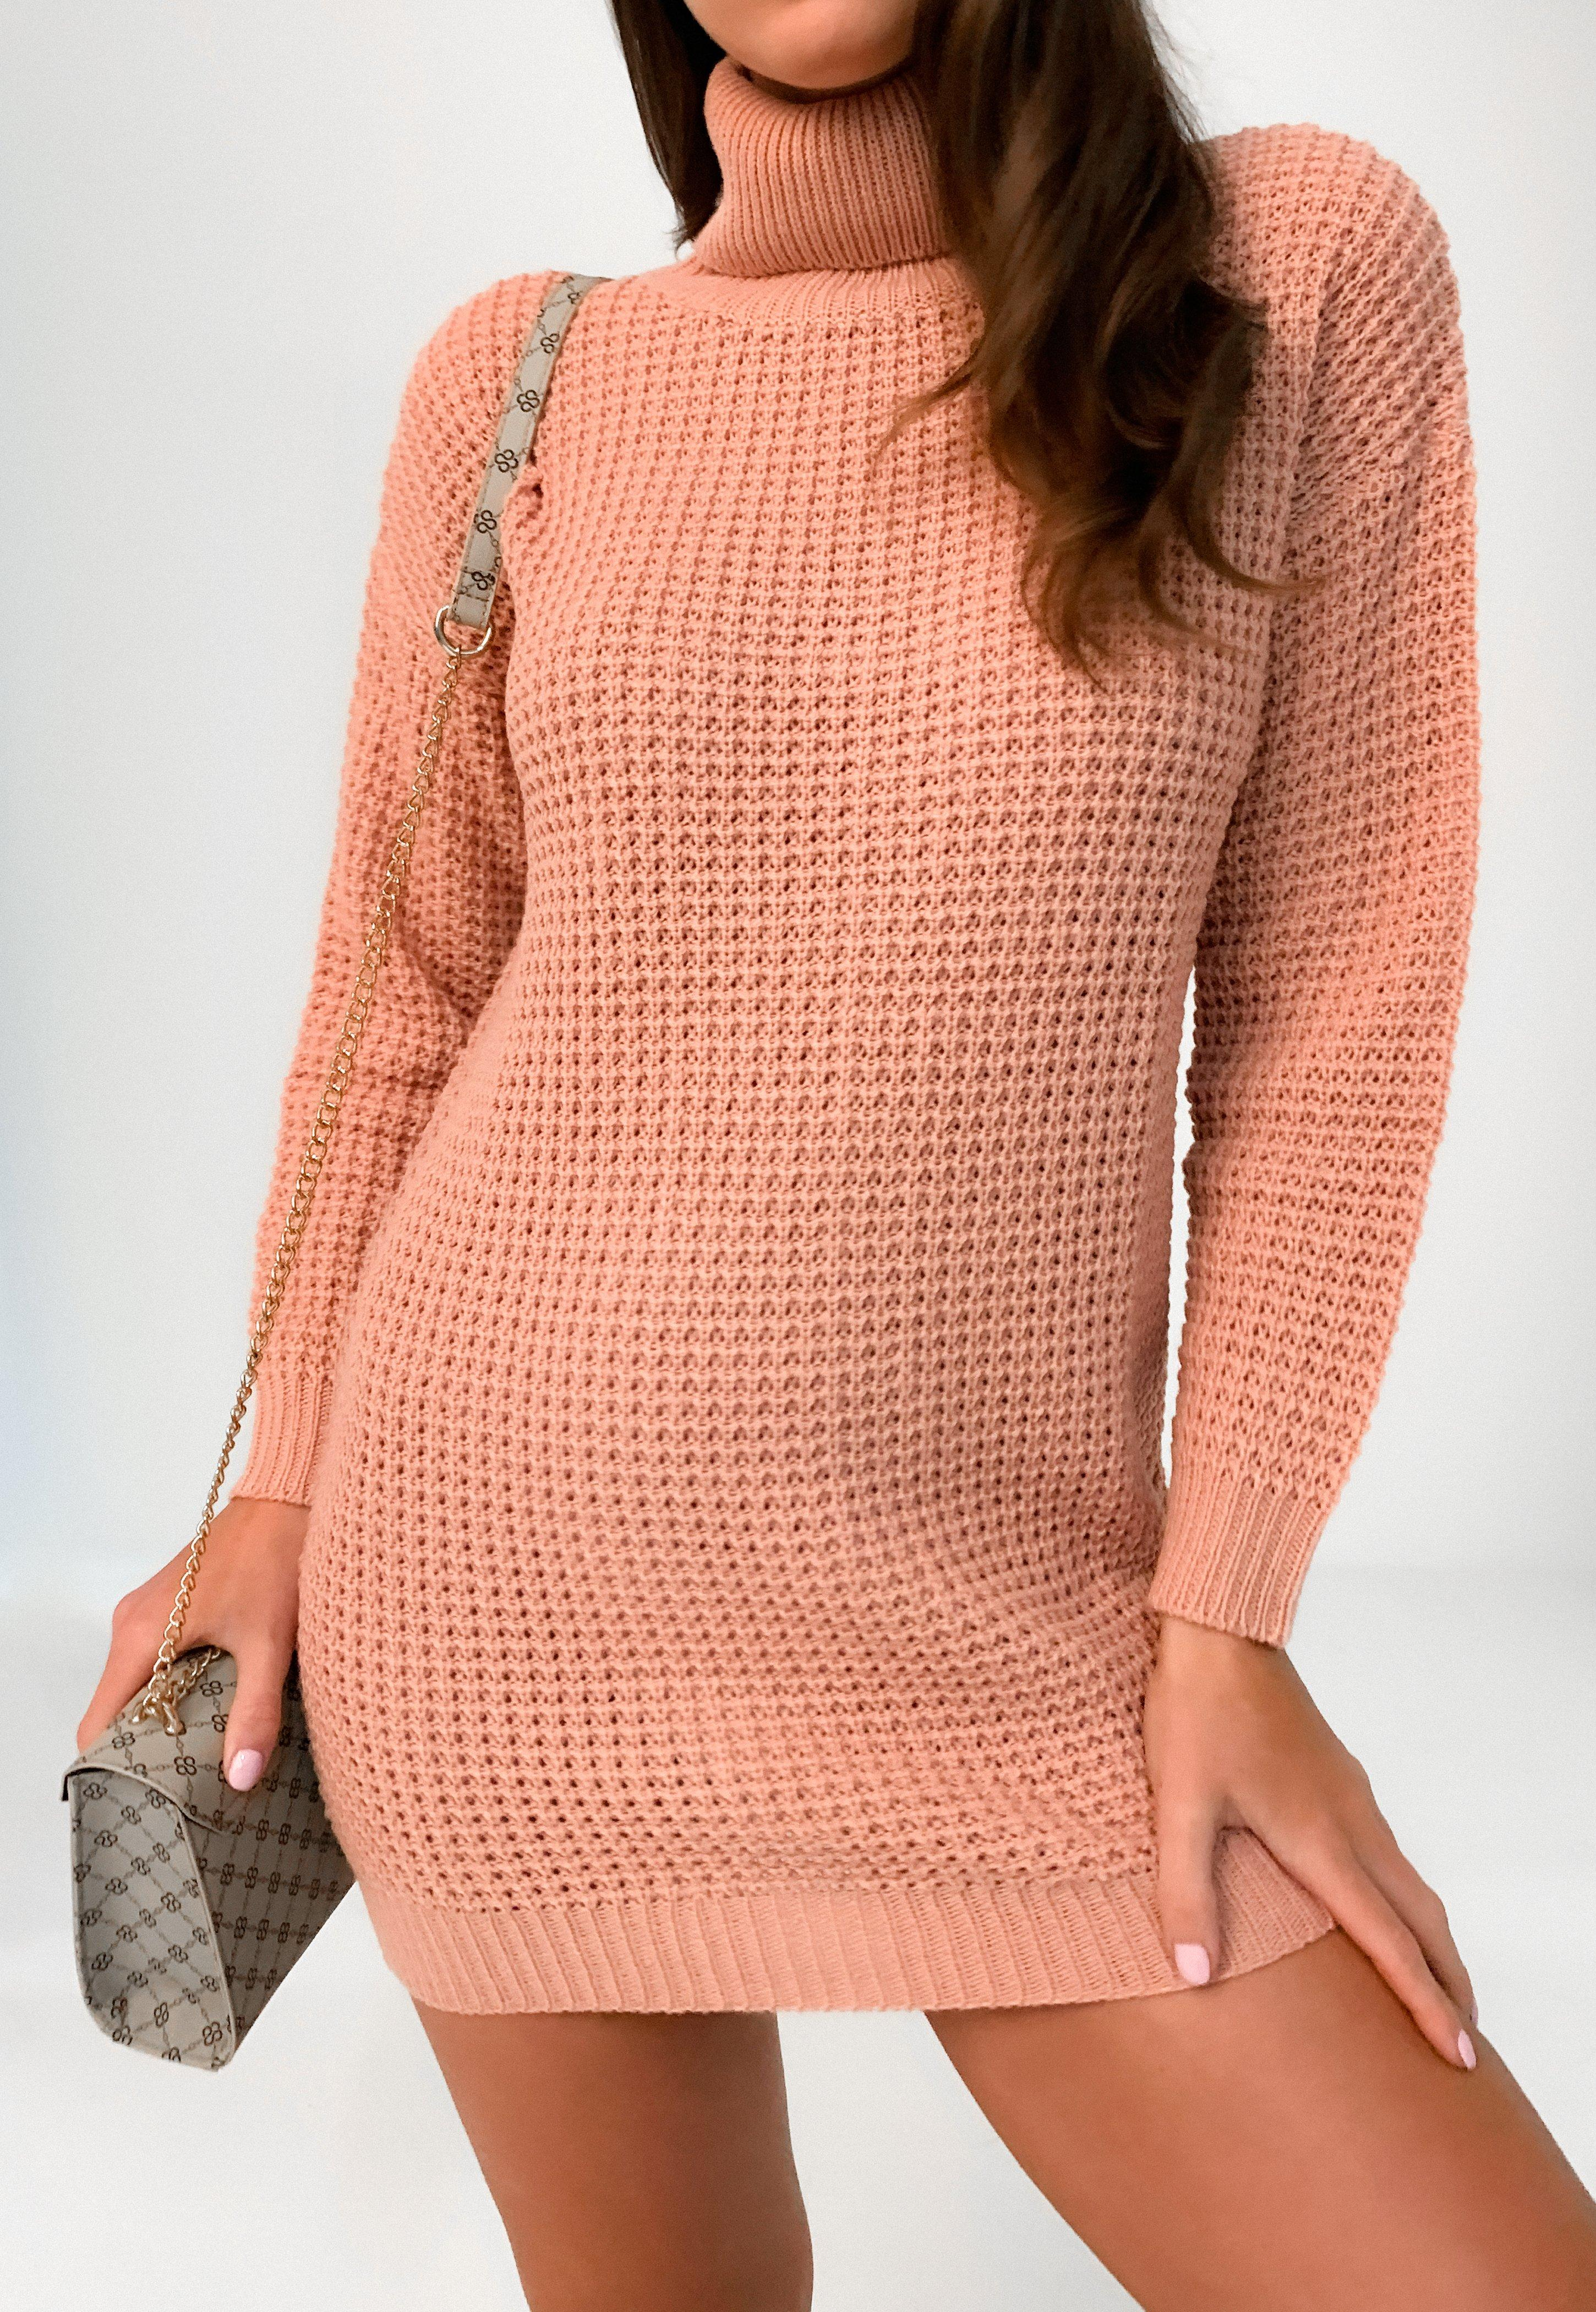 Petite Pink Roll Neck Knitted Jumper Dress | Missguided